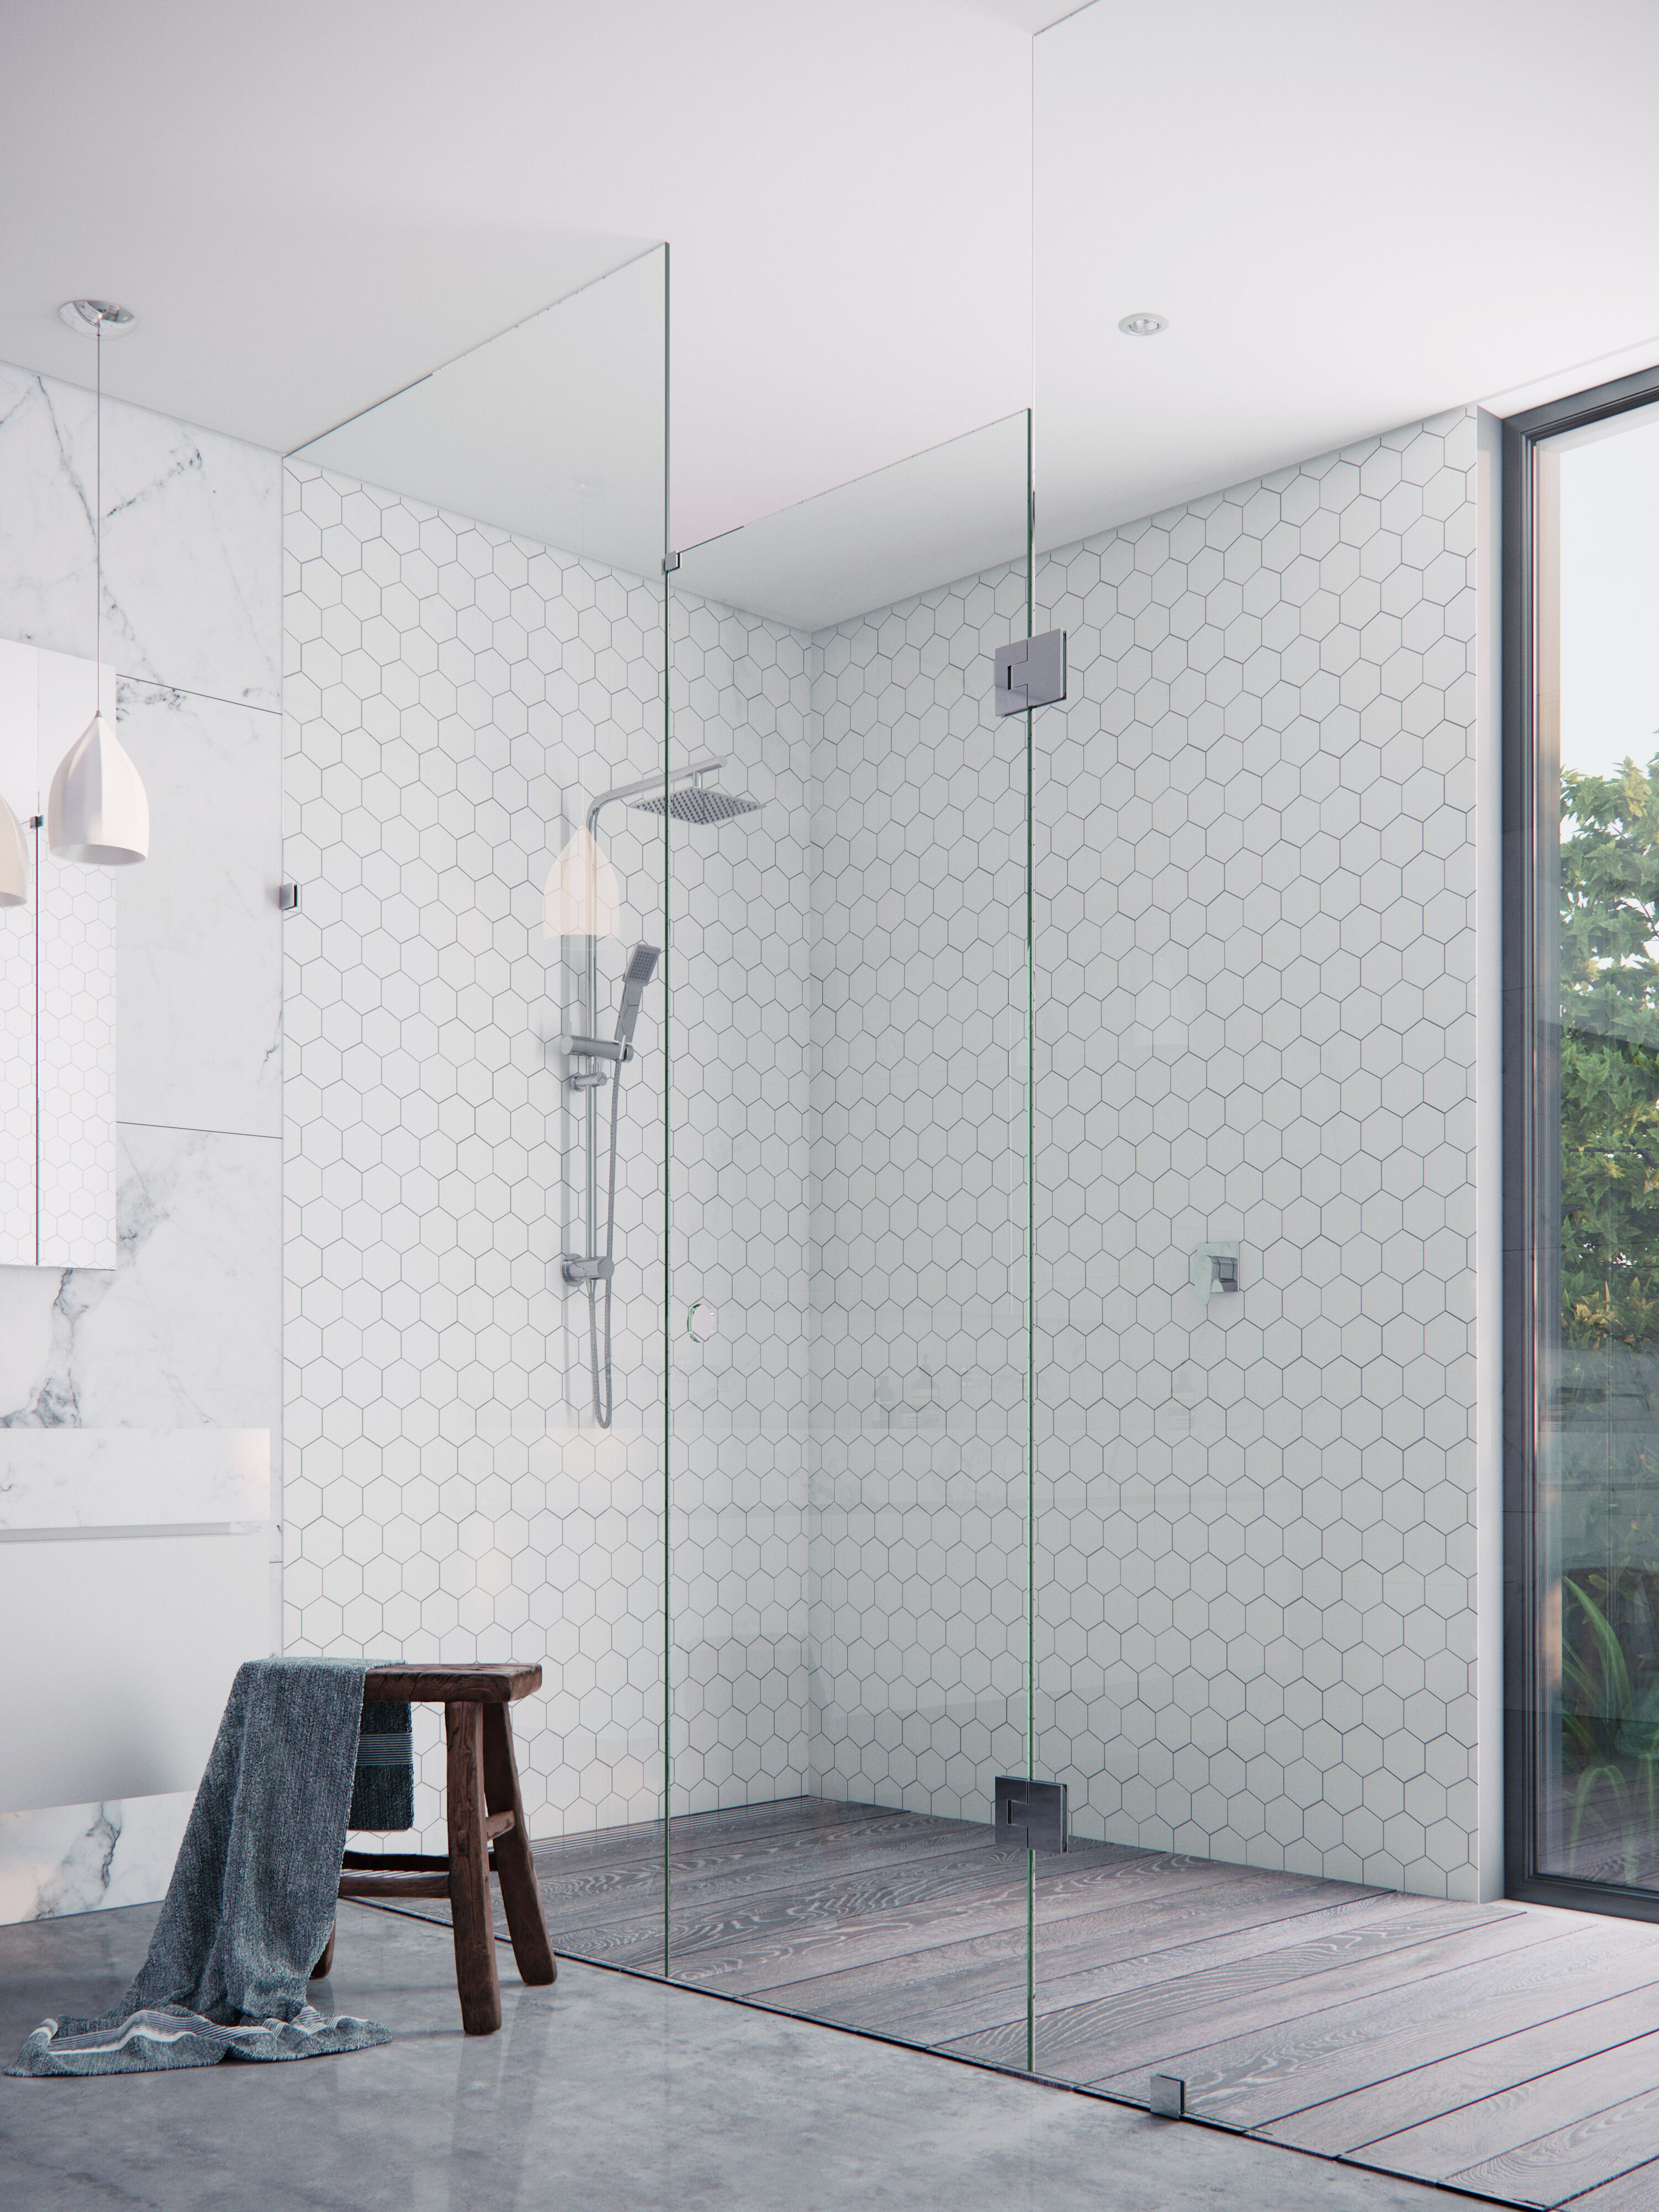 Choosing the right style of showerscreen